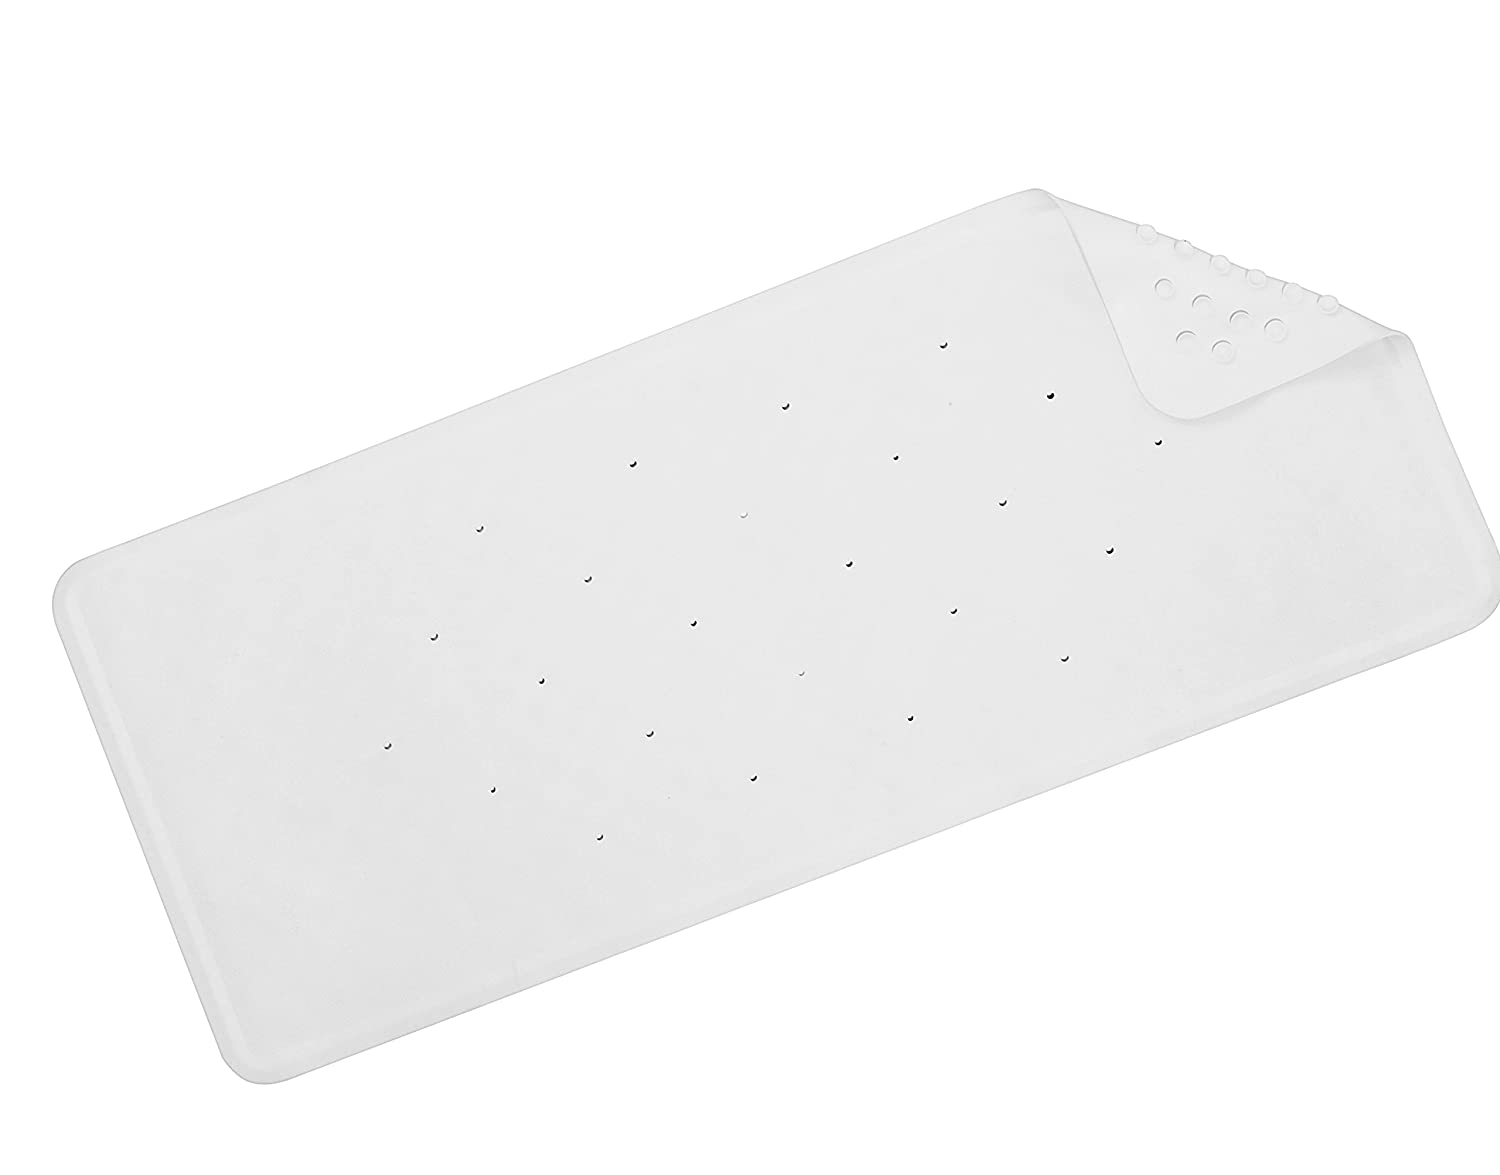 Croydex Hygiene 'N' Clean Anti-Bacterial Slip-Resistant Medium Natural Rubber Suction Bath Mat, 34 x 74 cm, White AG181422